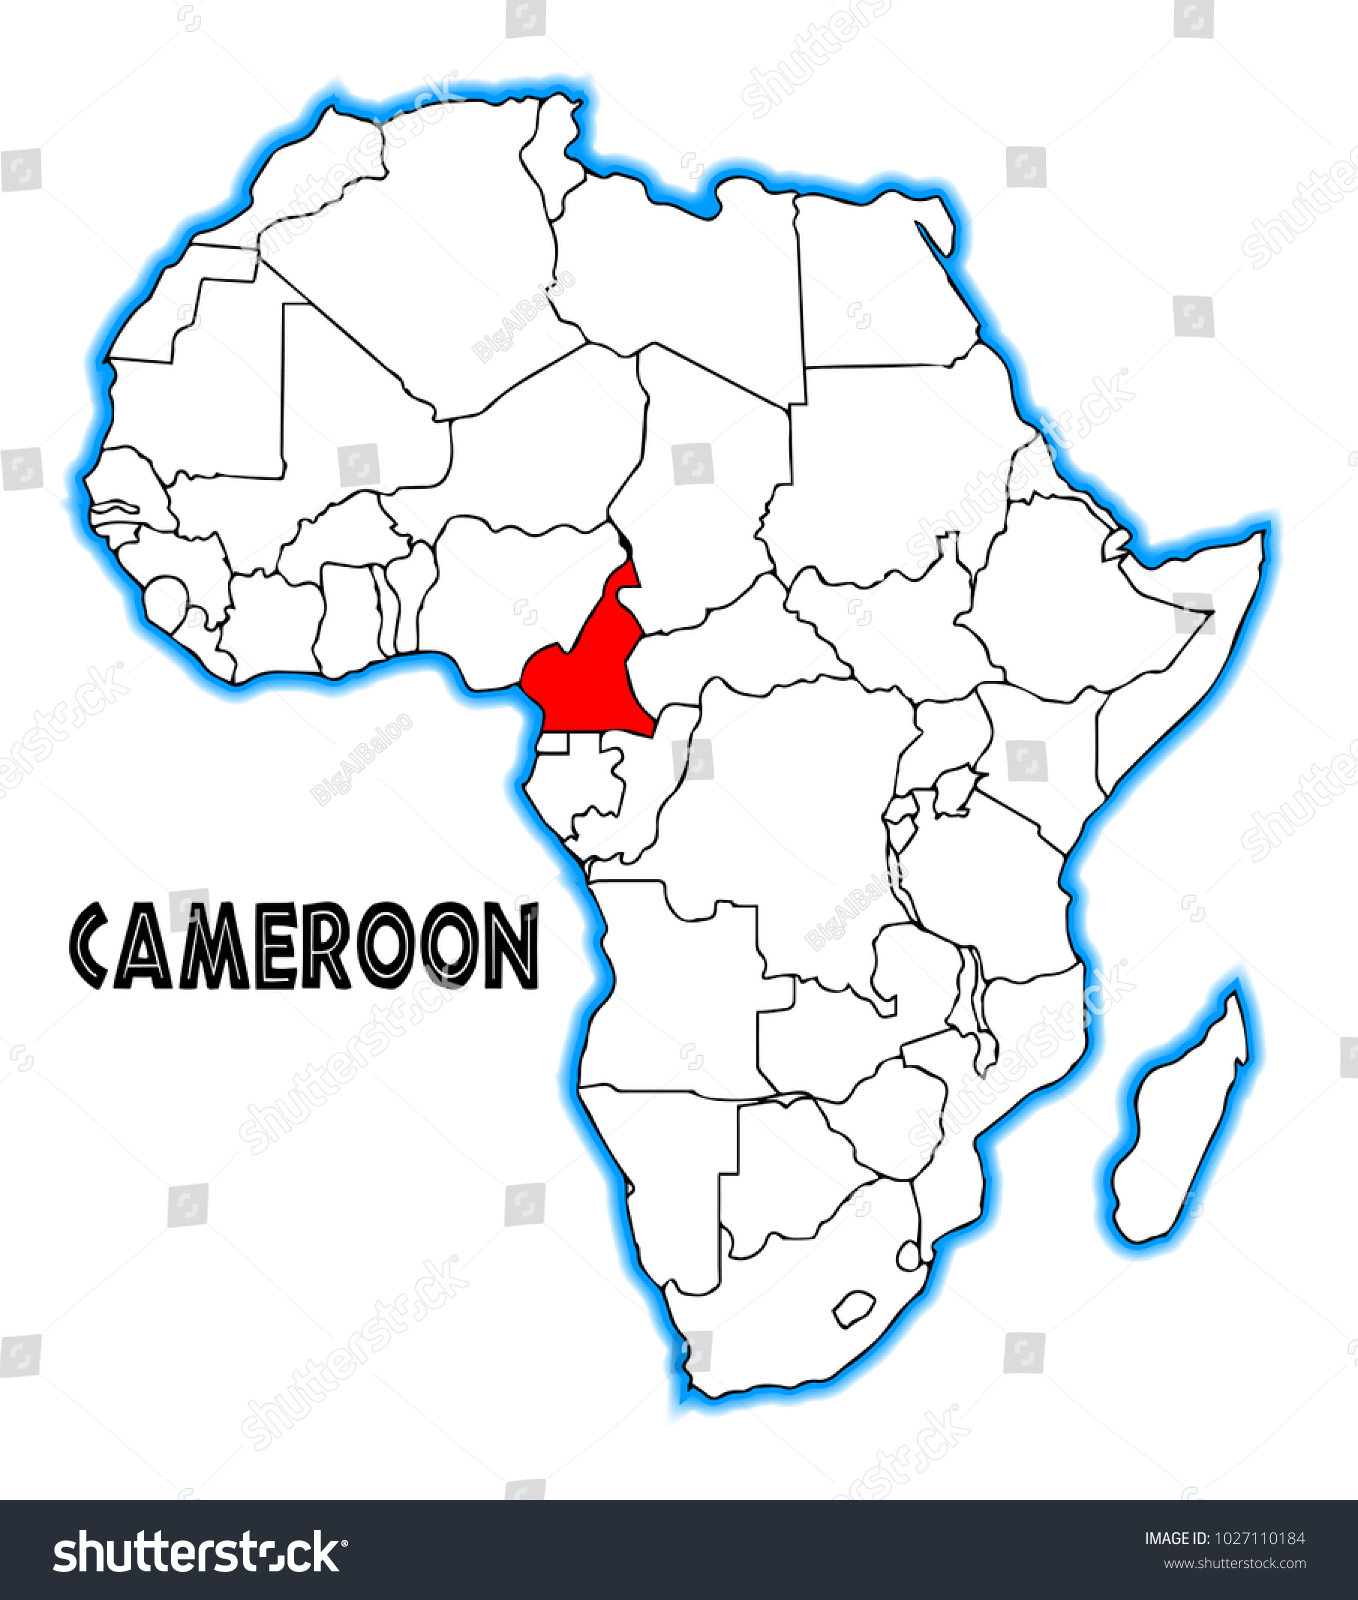 Cameroon Outline Inset Into Map Africa Stock Illustration 1027110184